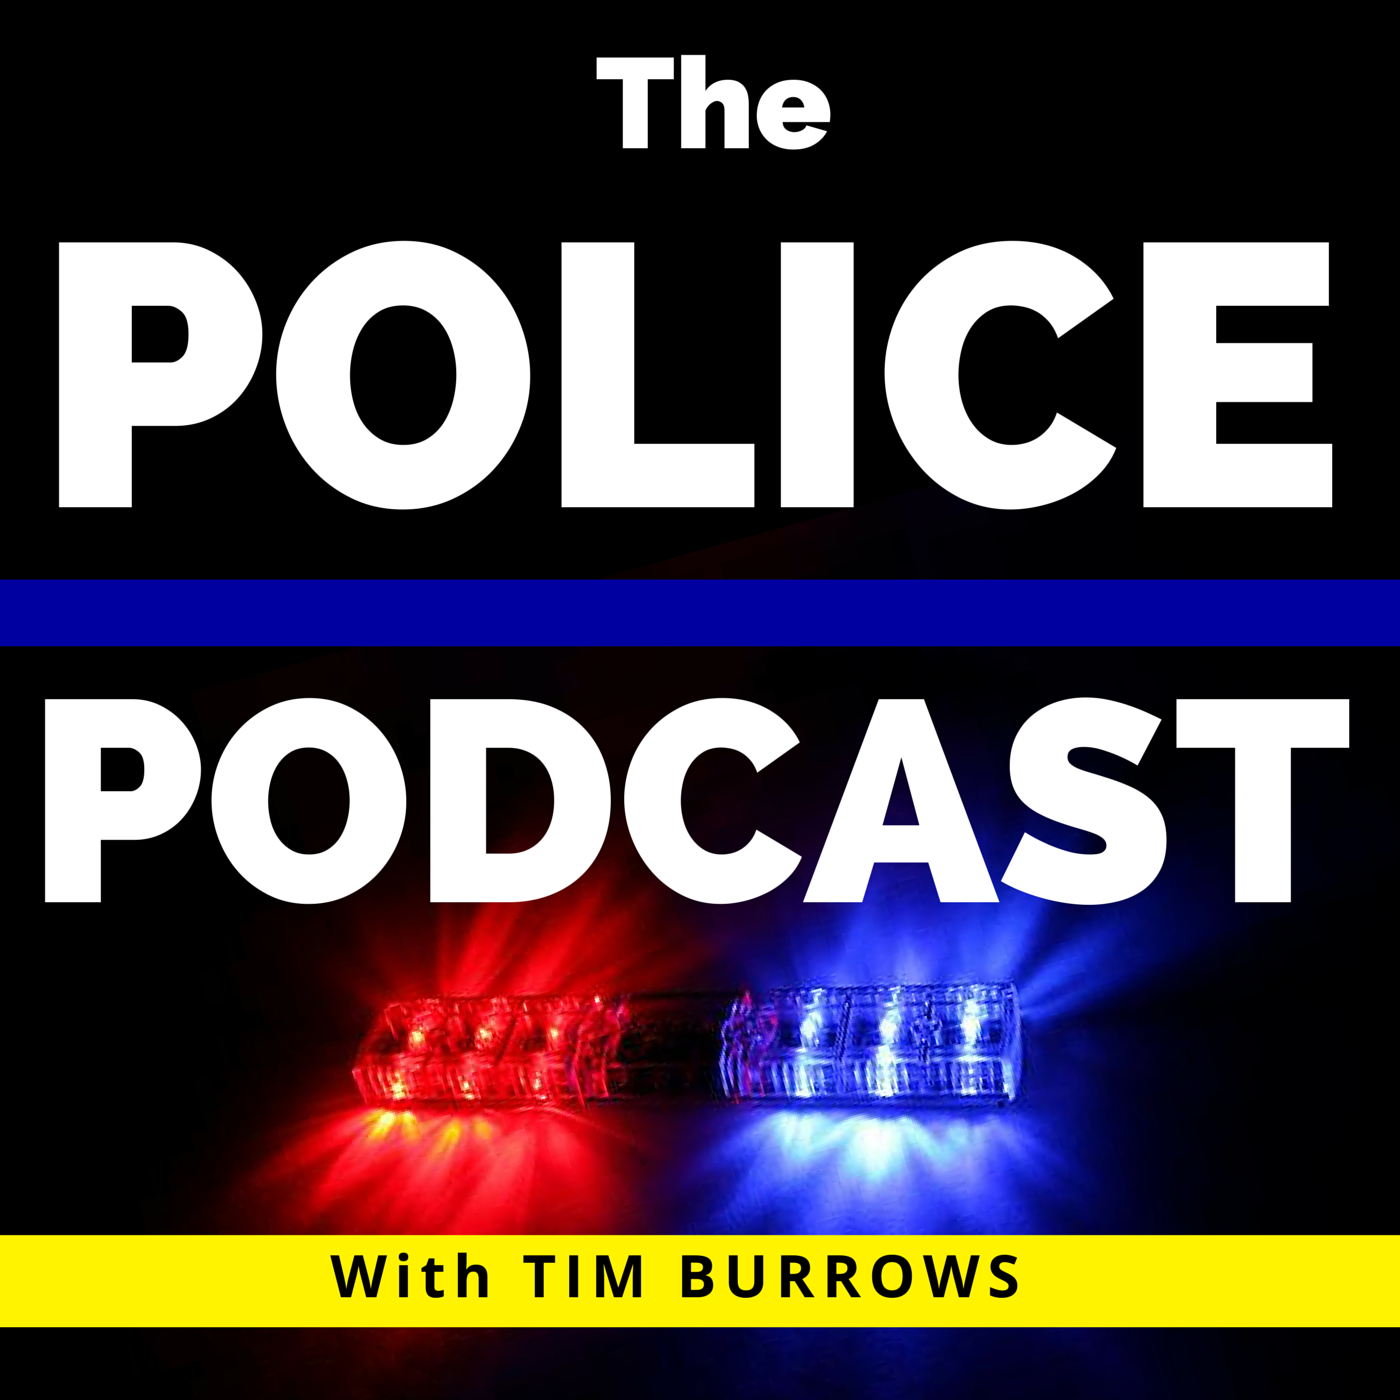 The Police Podcast show art